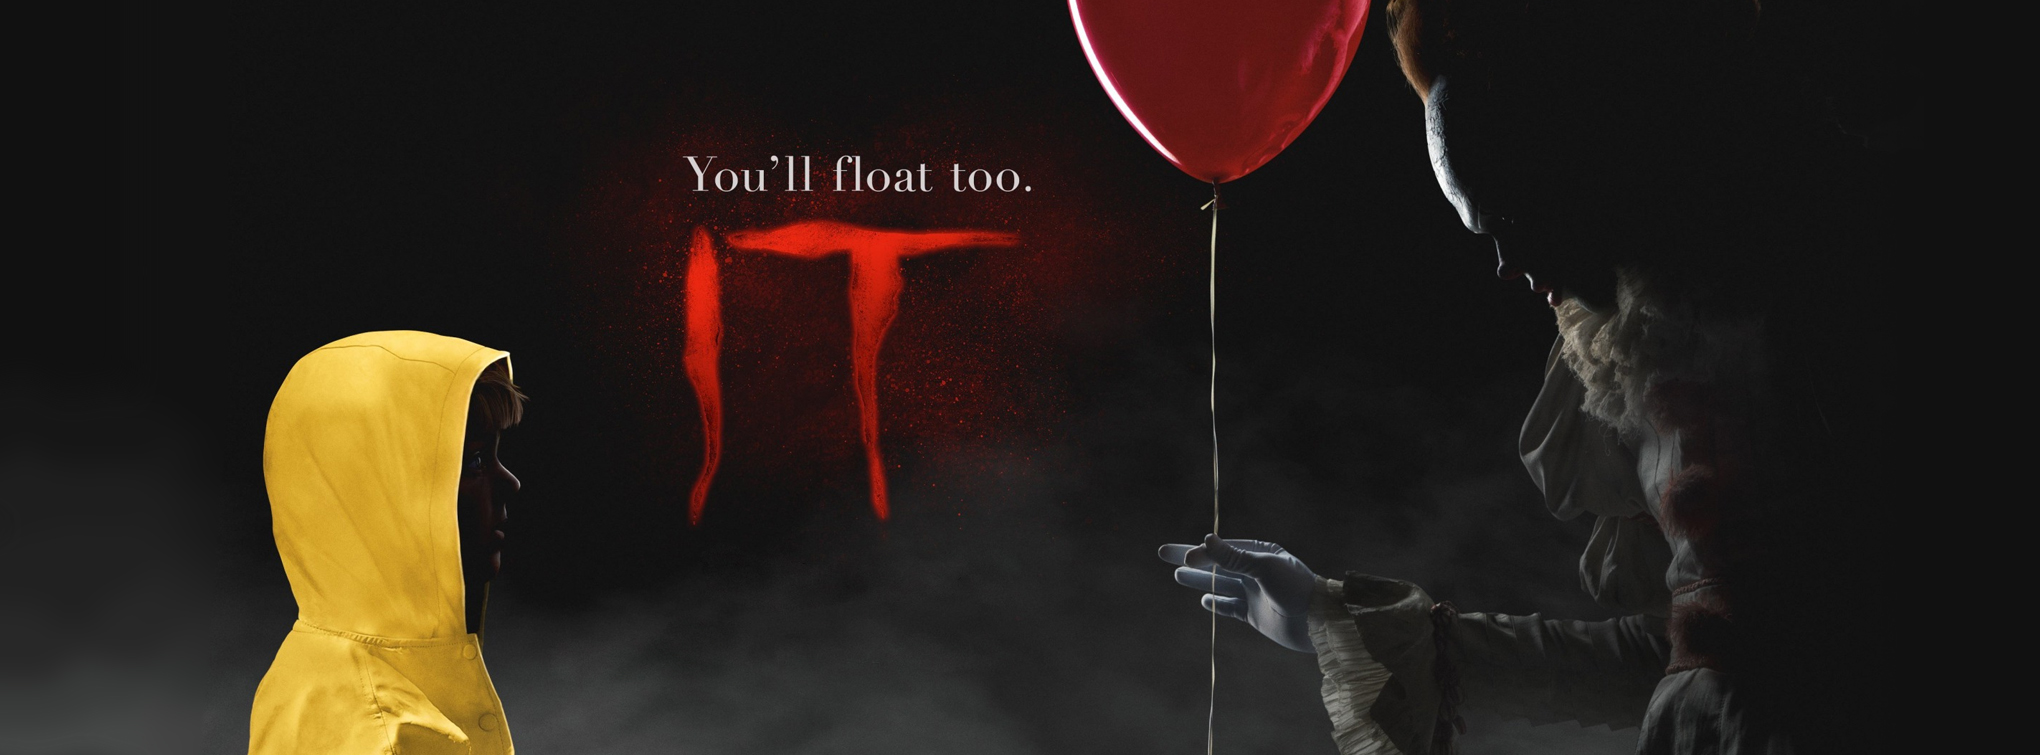 Slider image for IT, the movie